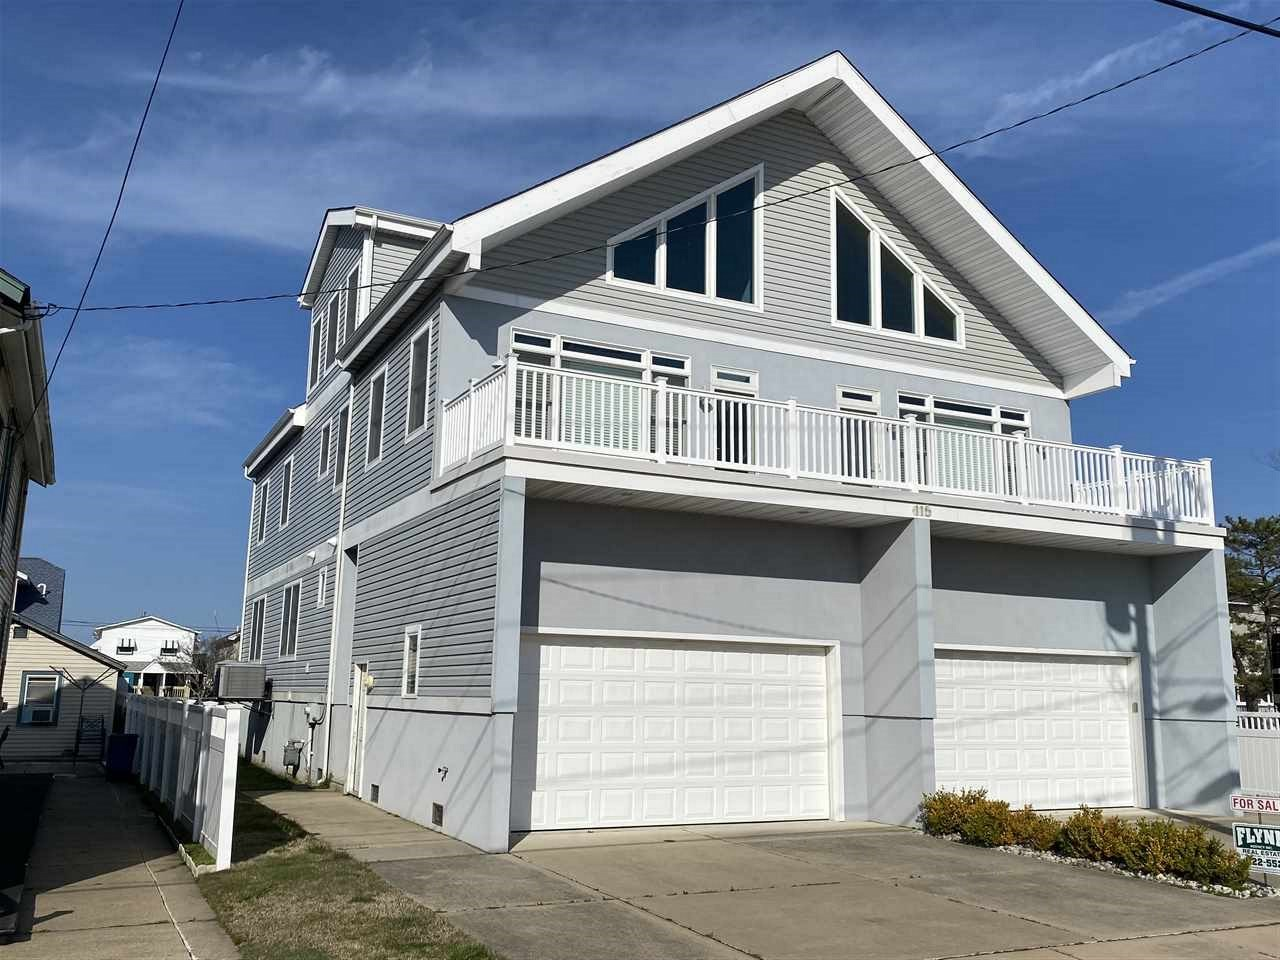 115, bay-side uni 12th, North Wildwood